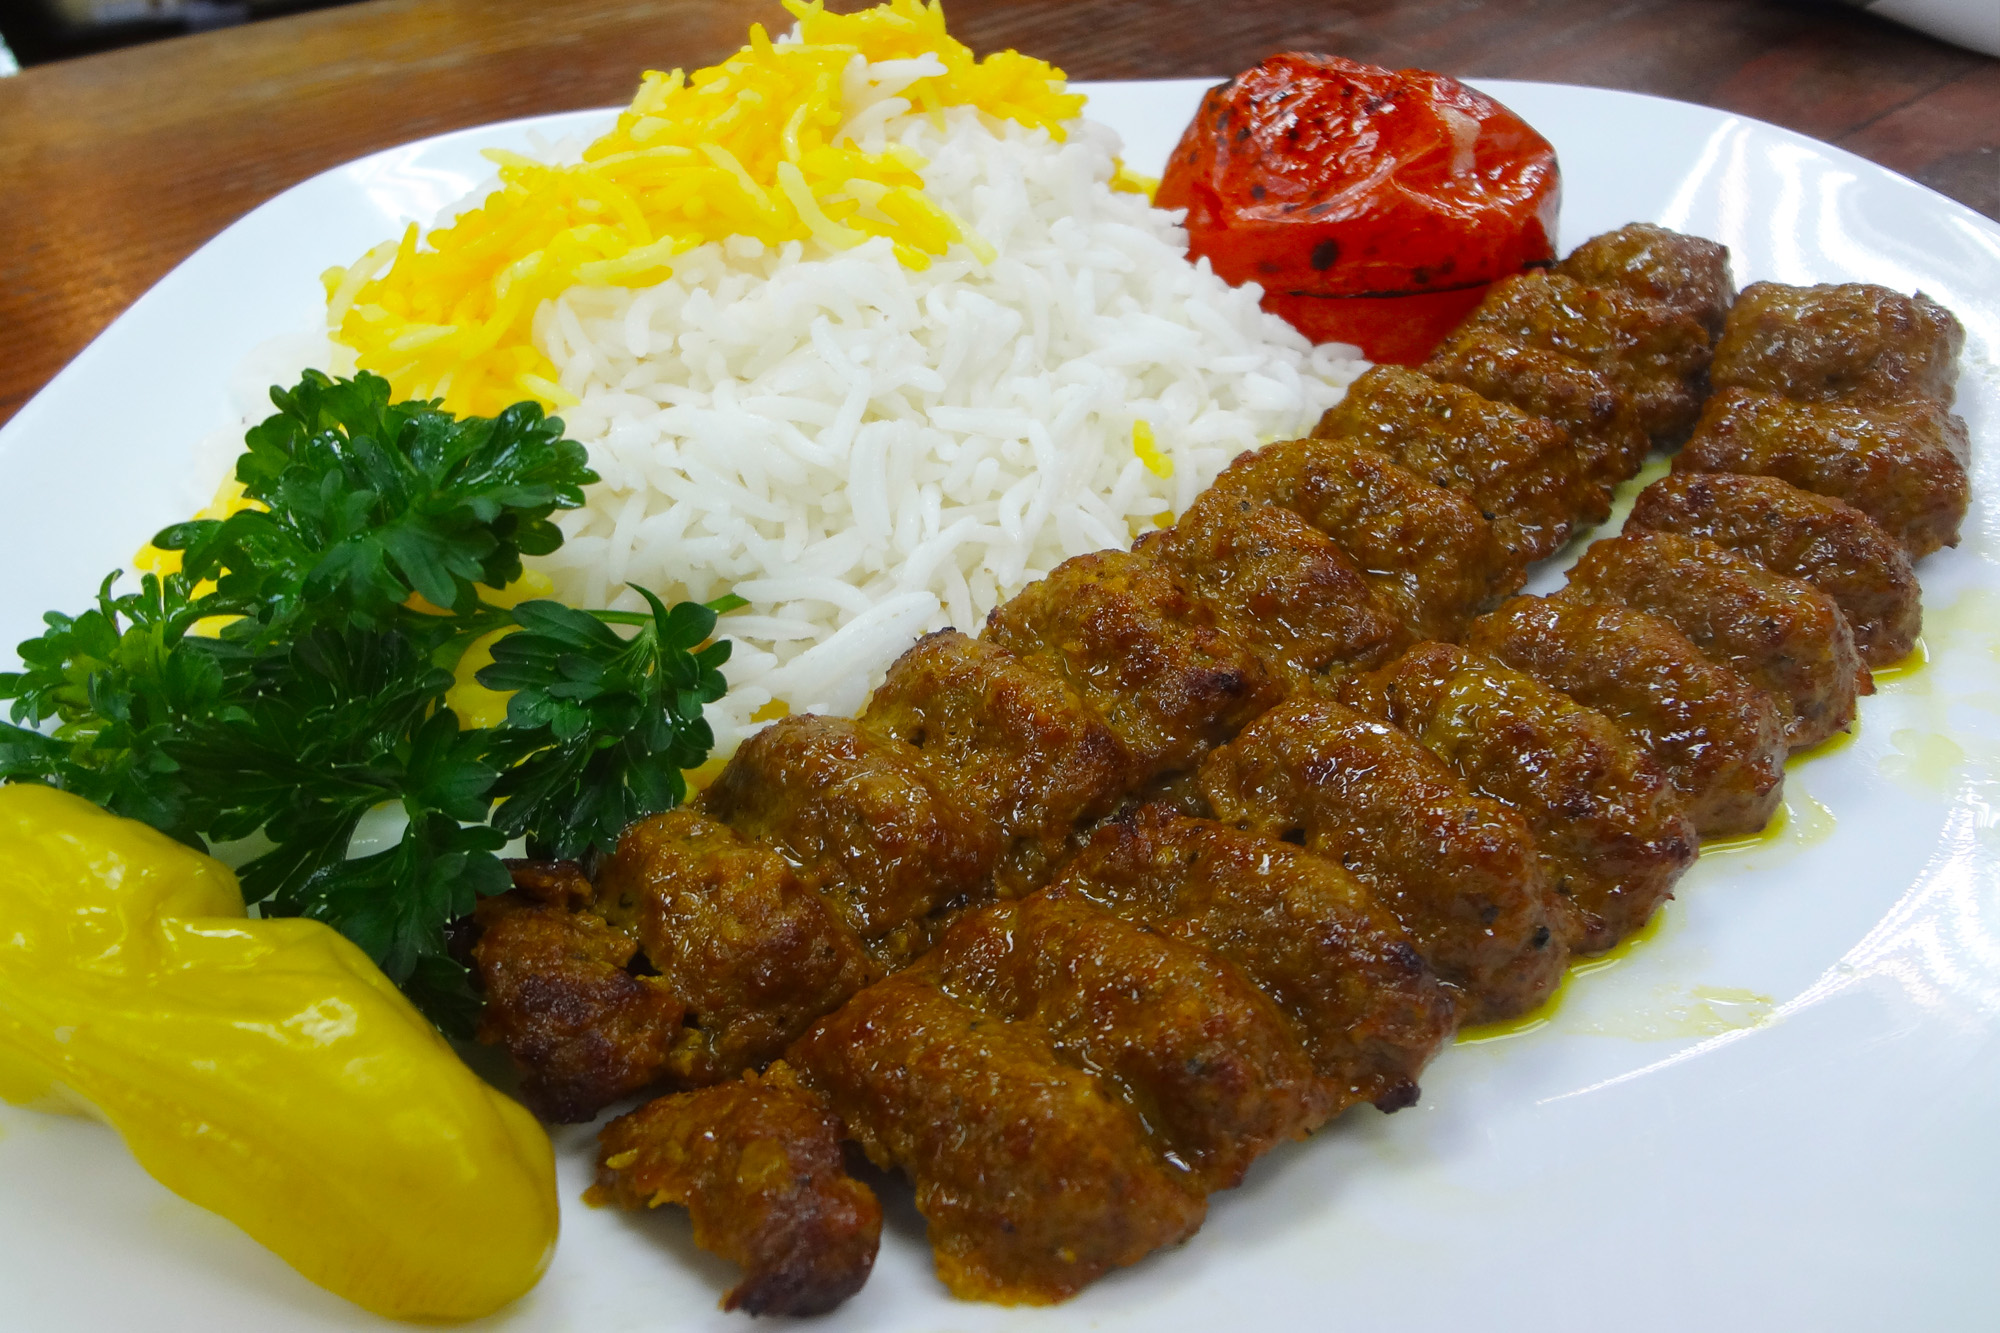 Kubideh Kebab - Two ground beef skewers served with basmati rice and grilled tomatoes at Sahel Persian Restaurant